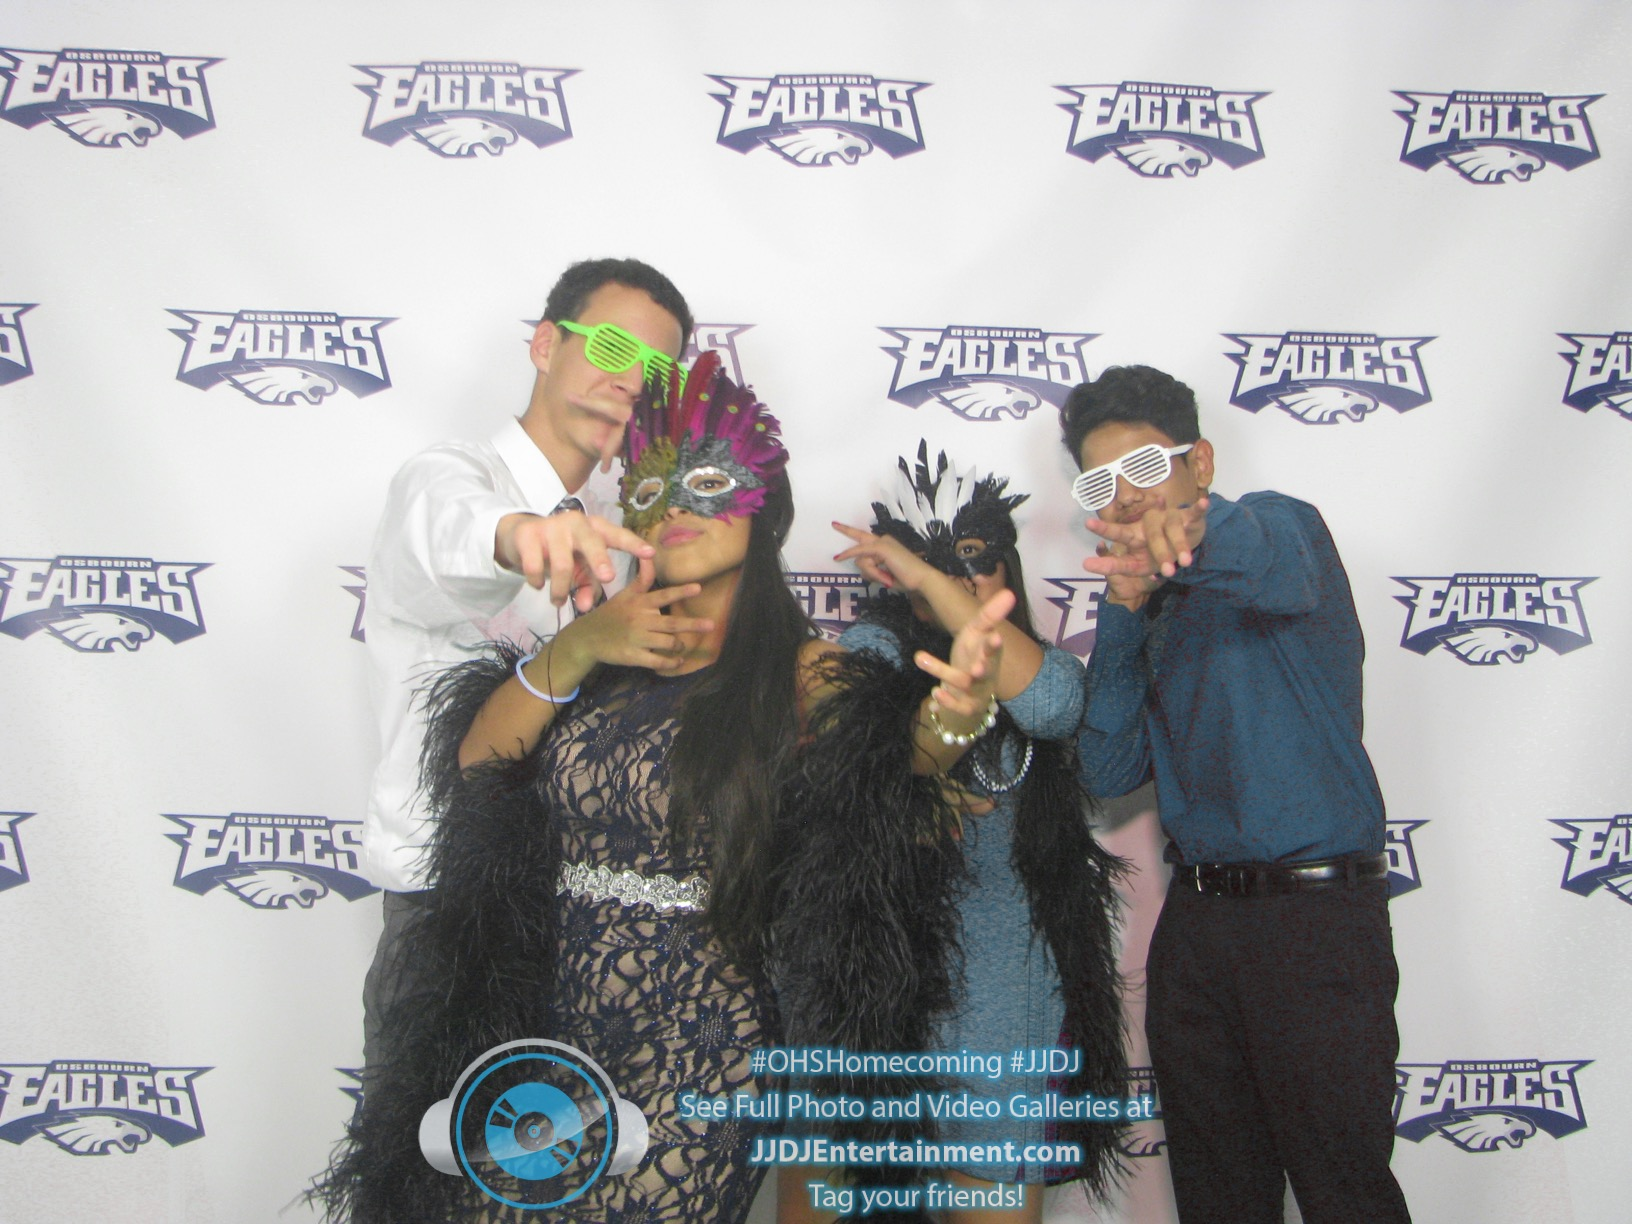 OHS 2014 Homecoming Photobooth -427